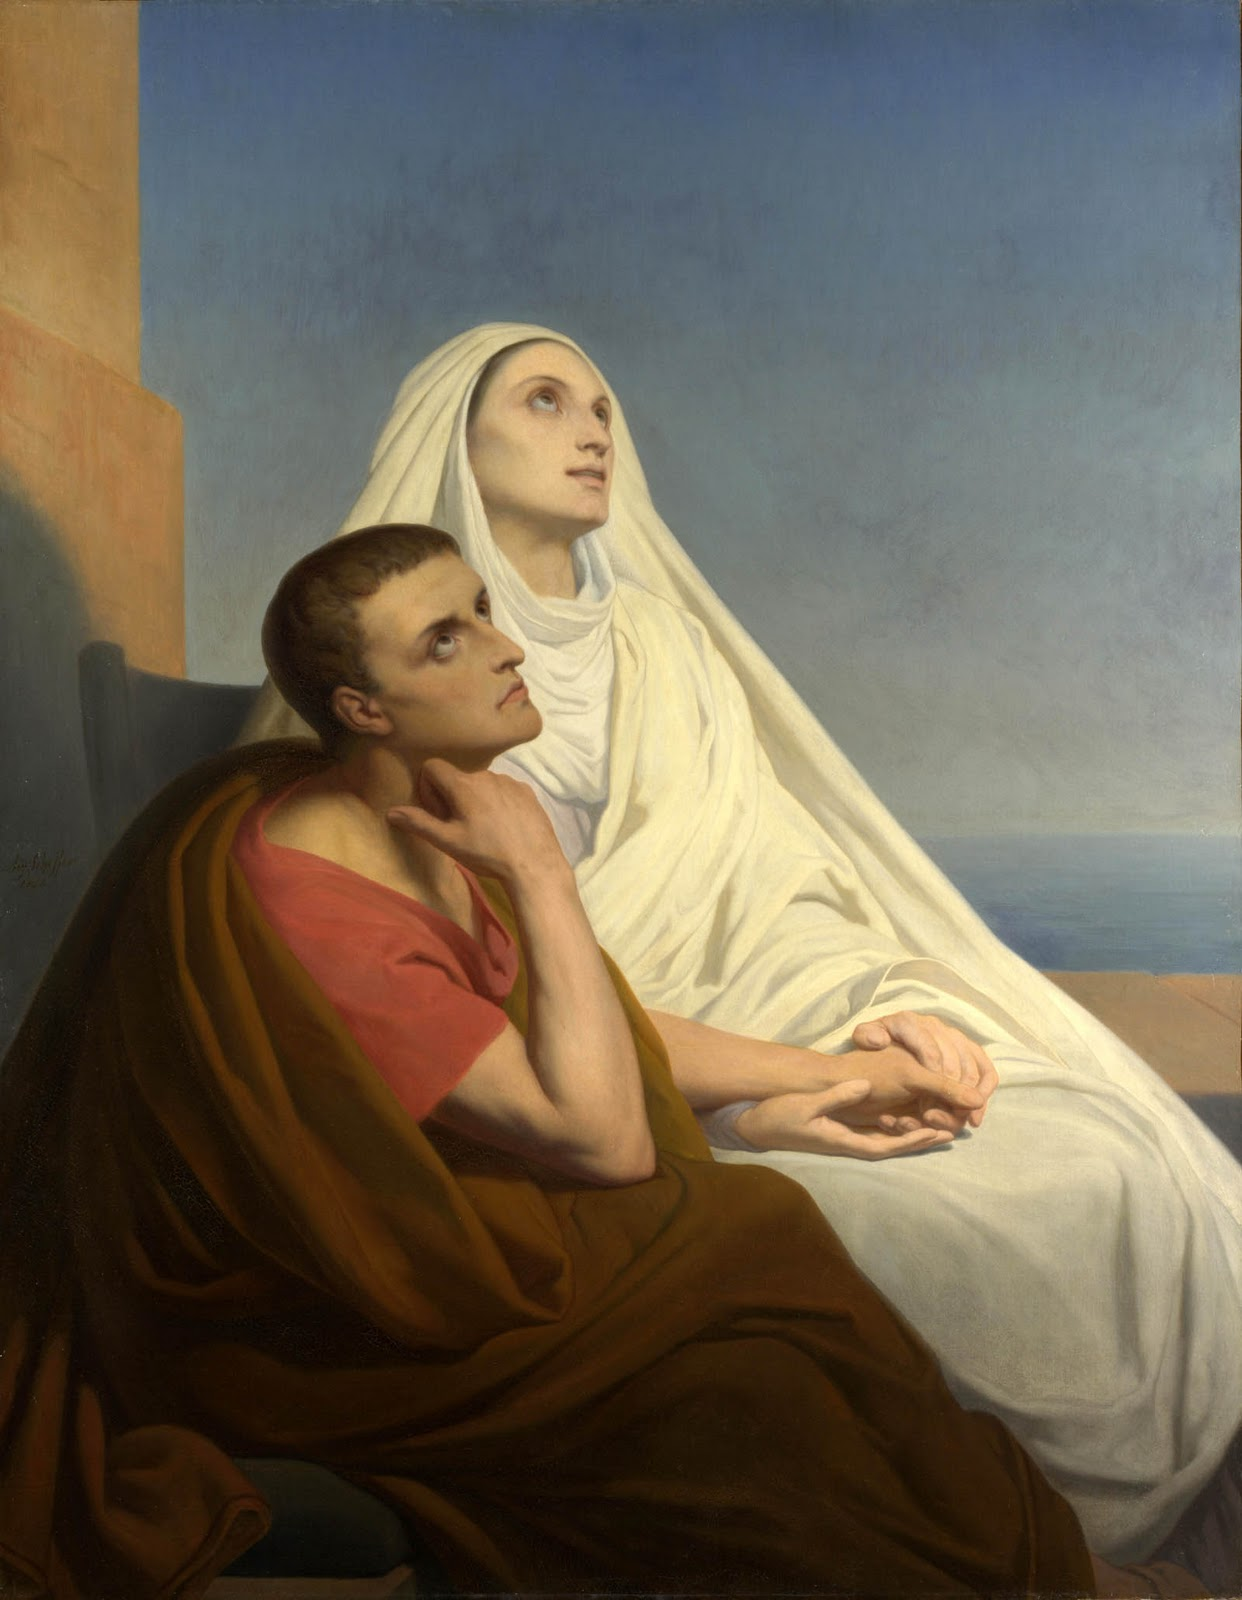 Saint Augustine and his mother, Saint Monica  by  Ary Scheffer , 1846